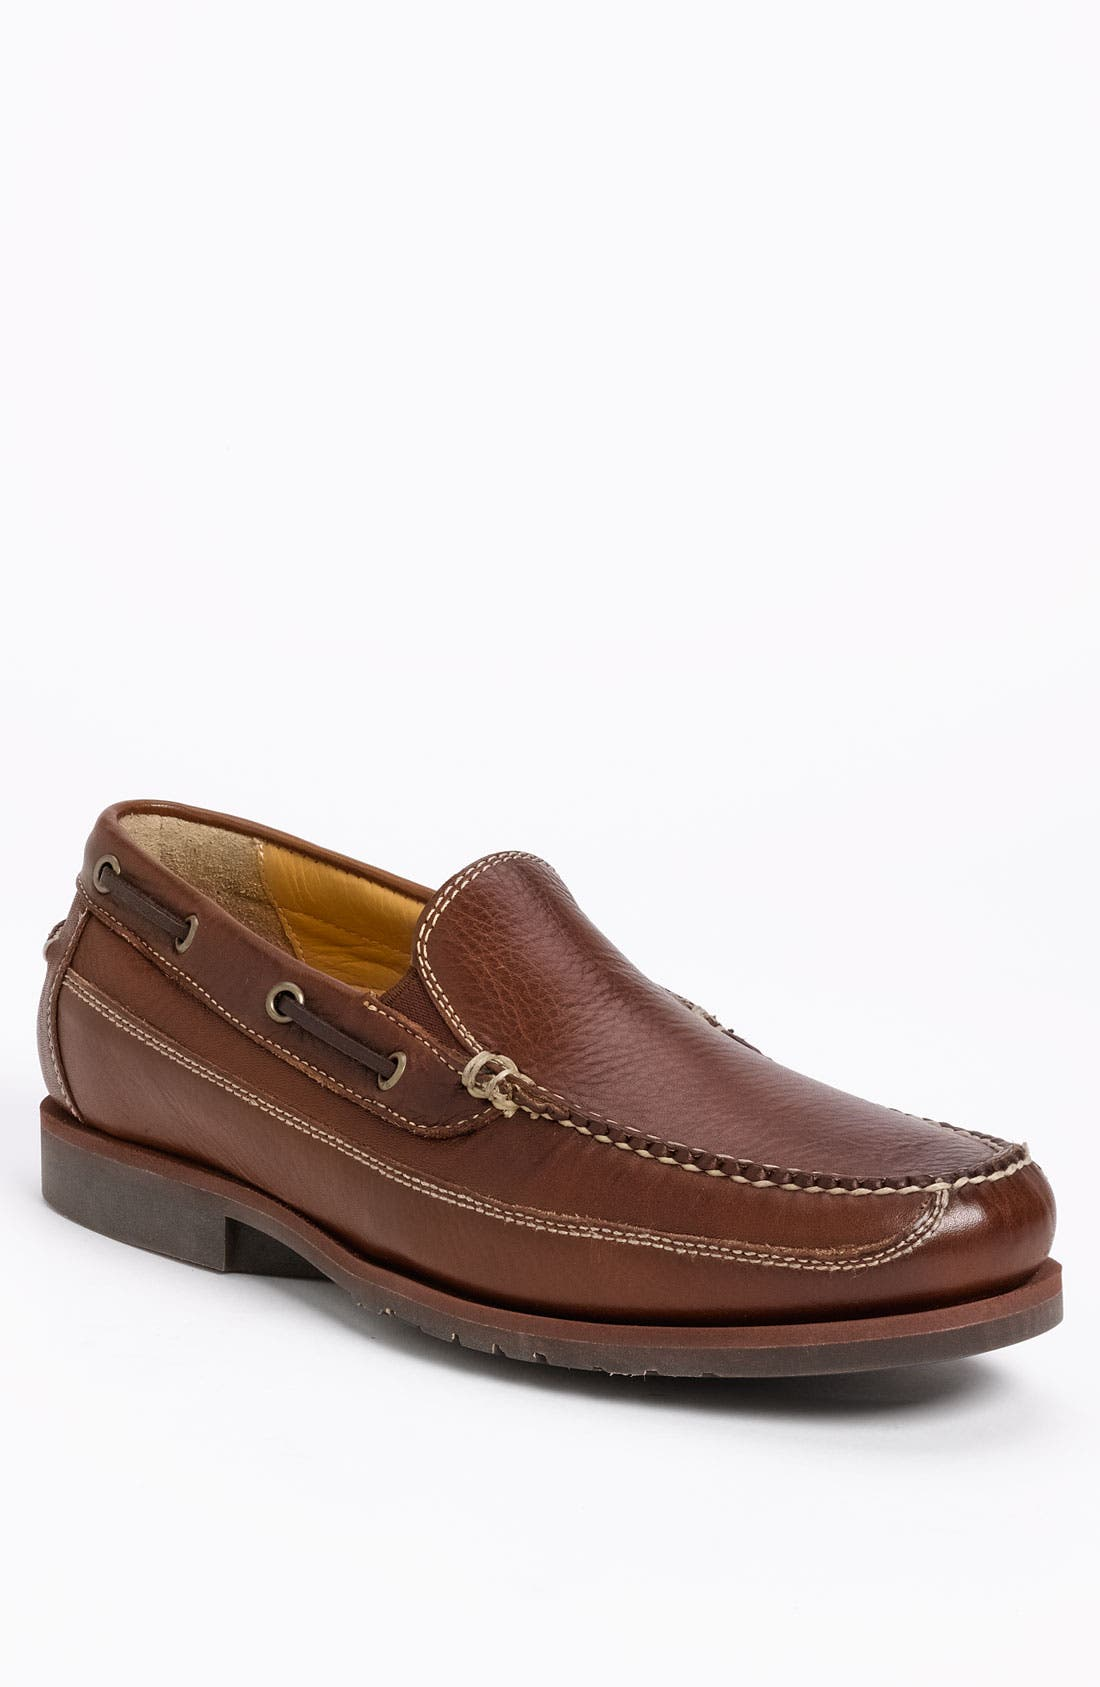 Alternate Image 1 Selected - Neil M 'Cape' Slip-On